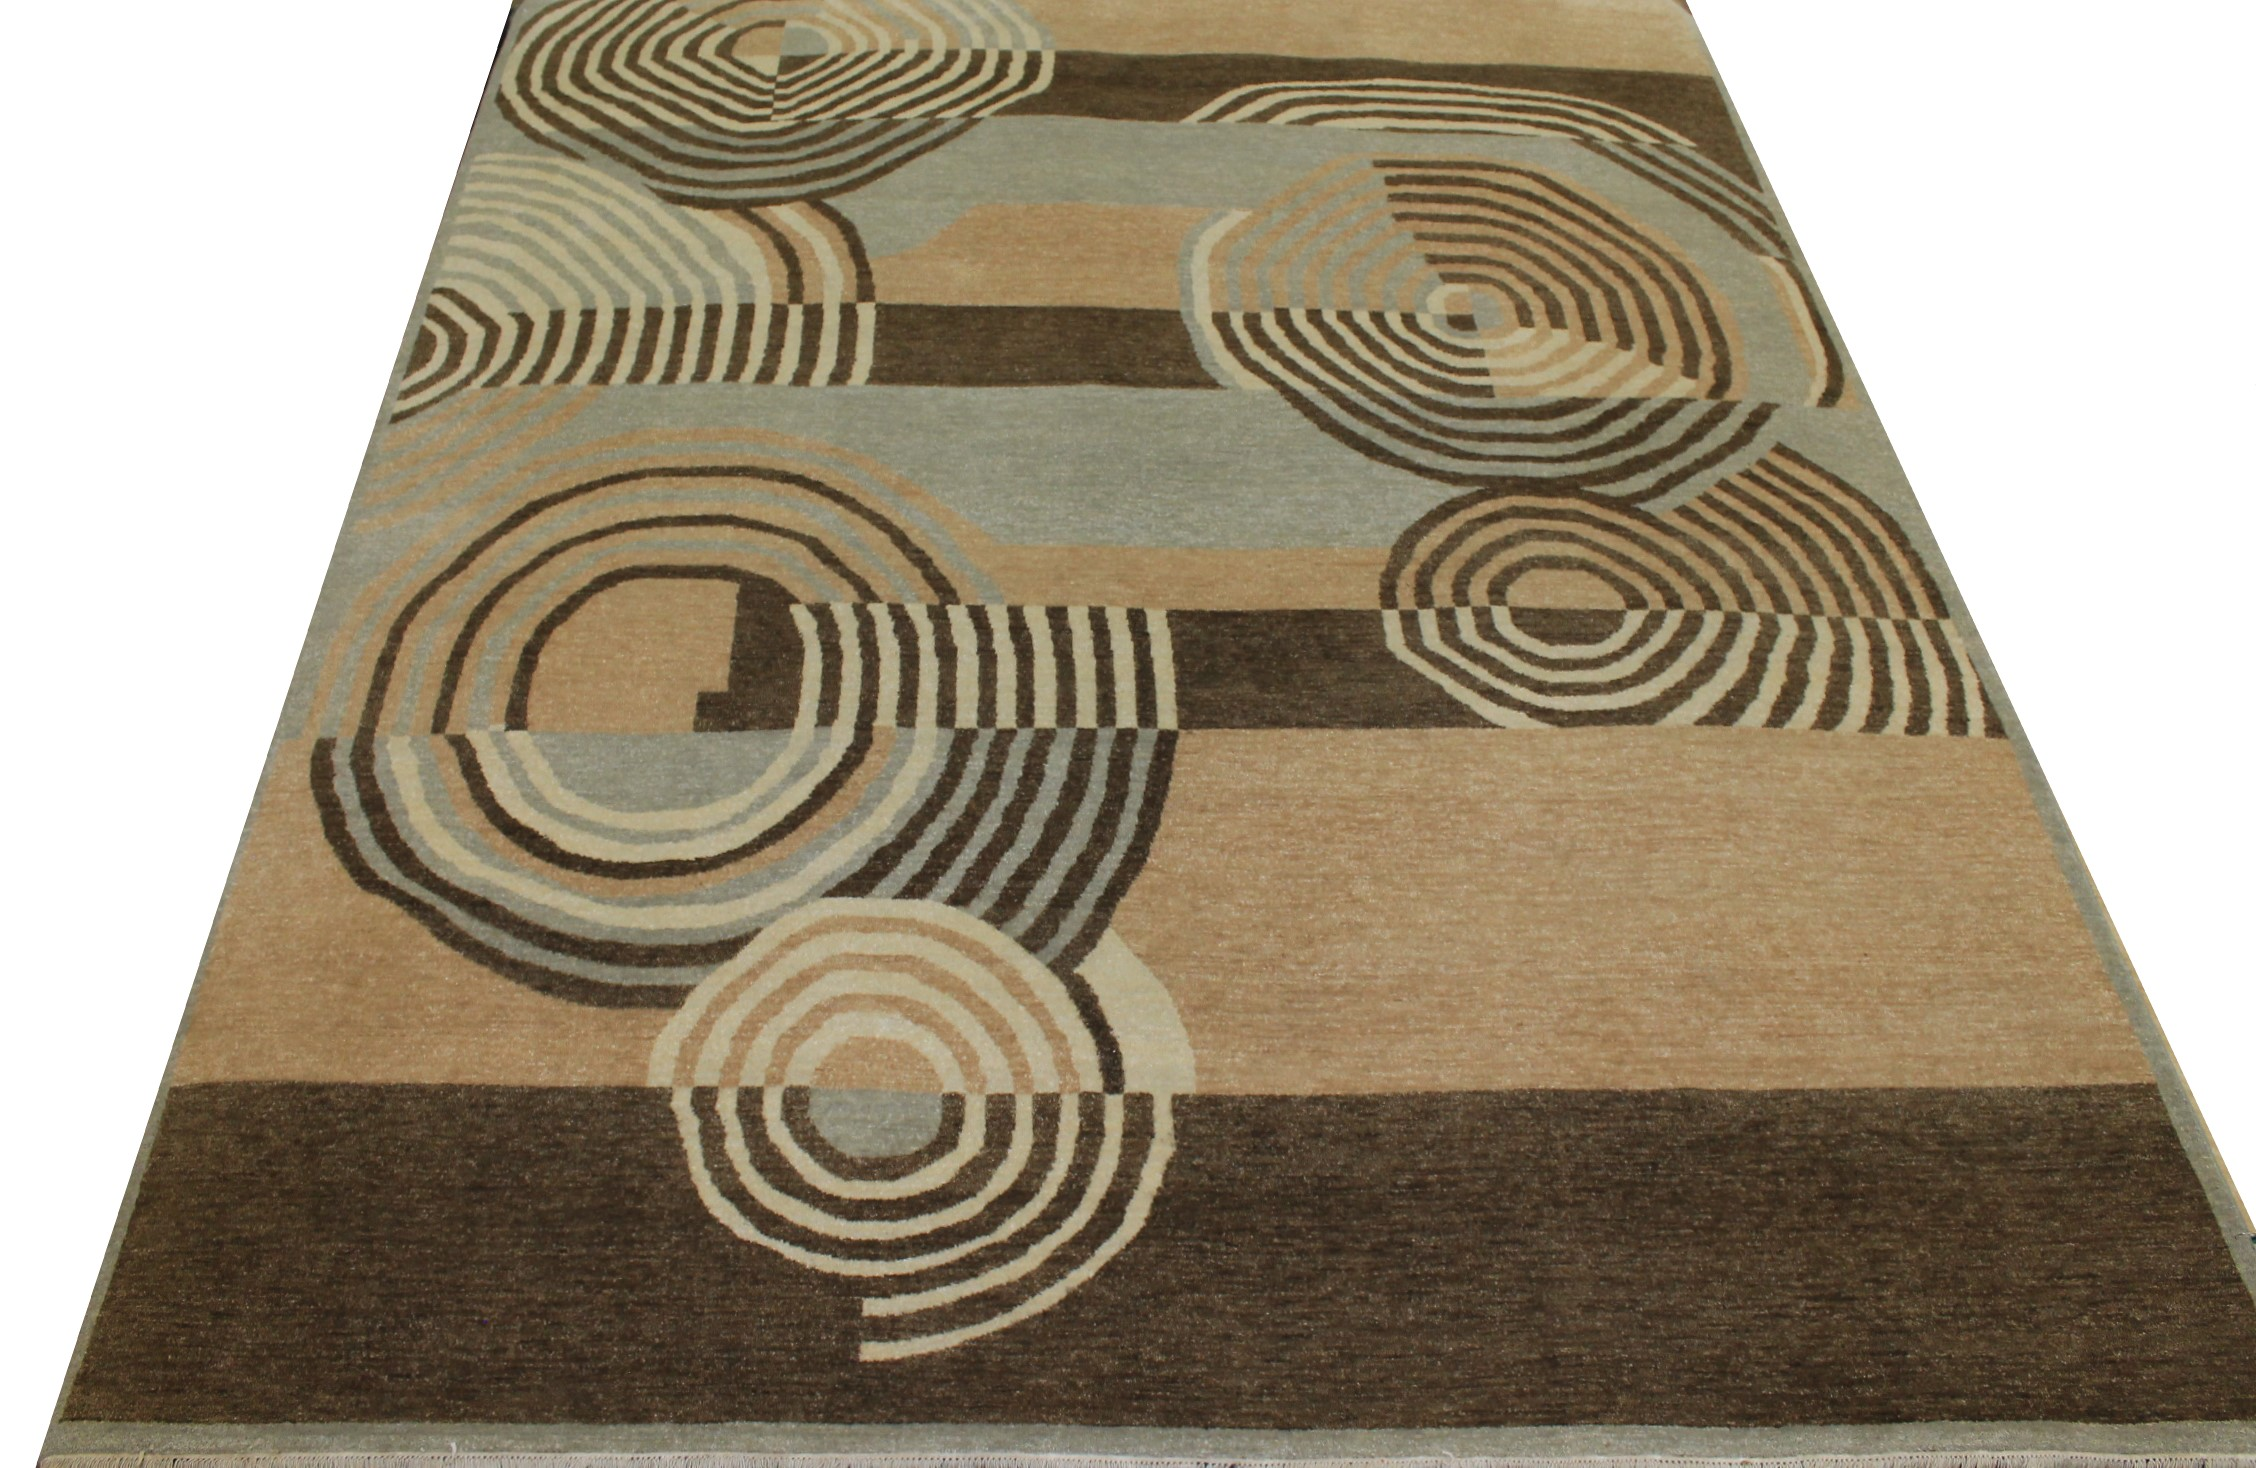 8x10 Contemporary Hand Knotted Wool Area Rug - MR17483